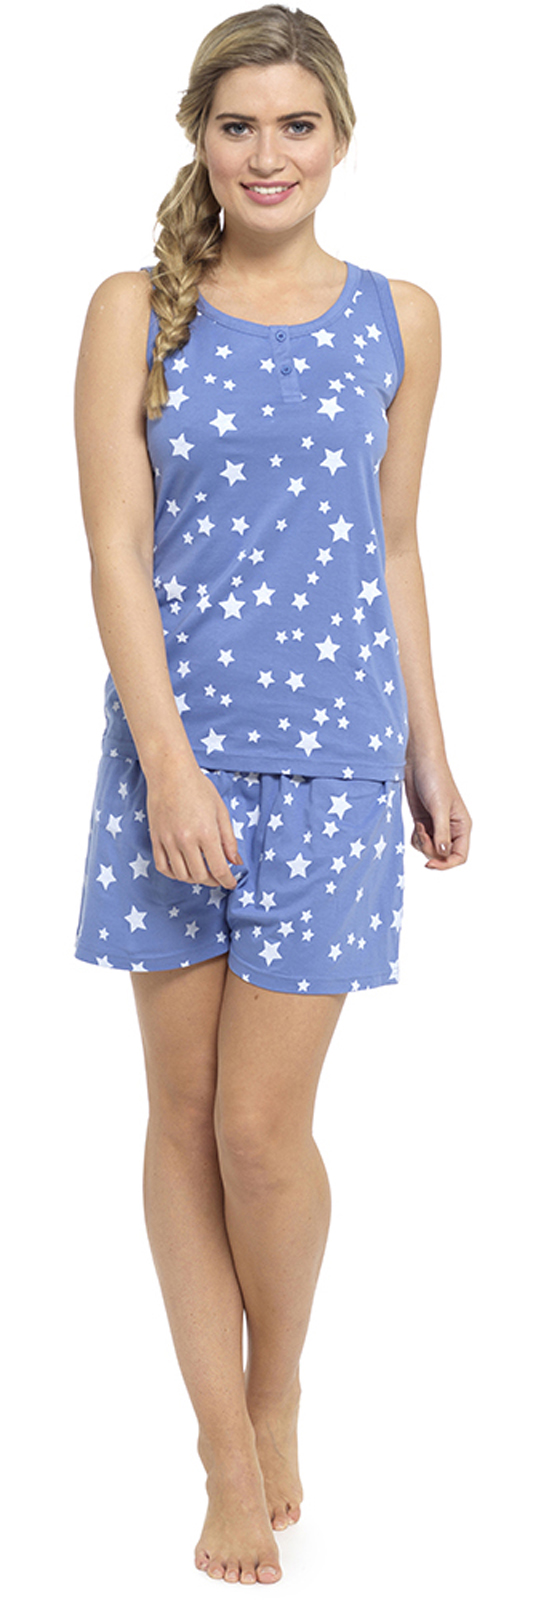 Browse our women's pajamas to find endless sleepwear styles. cotton and more. Shop now at Victoria's Secret. Browse our women's pajamas to find endless sleepwear styles. Pick sexy pjs in satin, cotton and more. Shop now at Victoria's Secret. Love It ALL PAJAMAS(SLEEPWEAR/PAJAMAS) The Sleepover Knit Short Set Quick View Quick View. The.